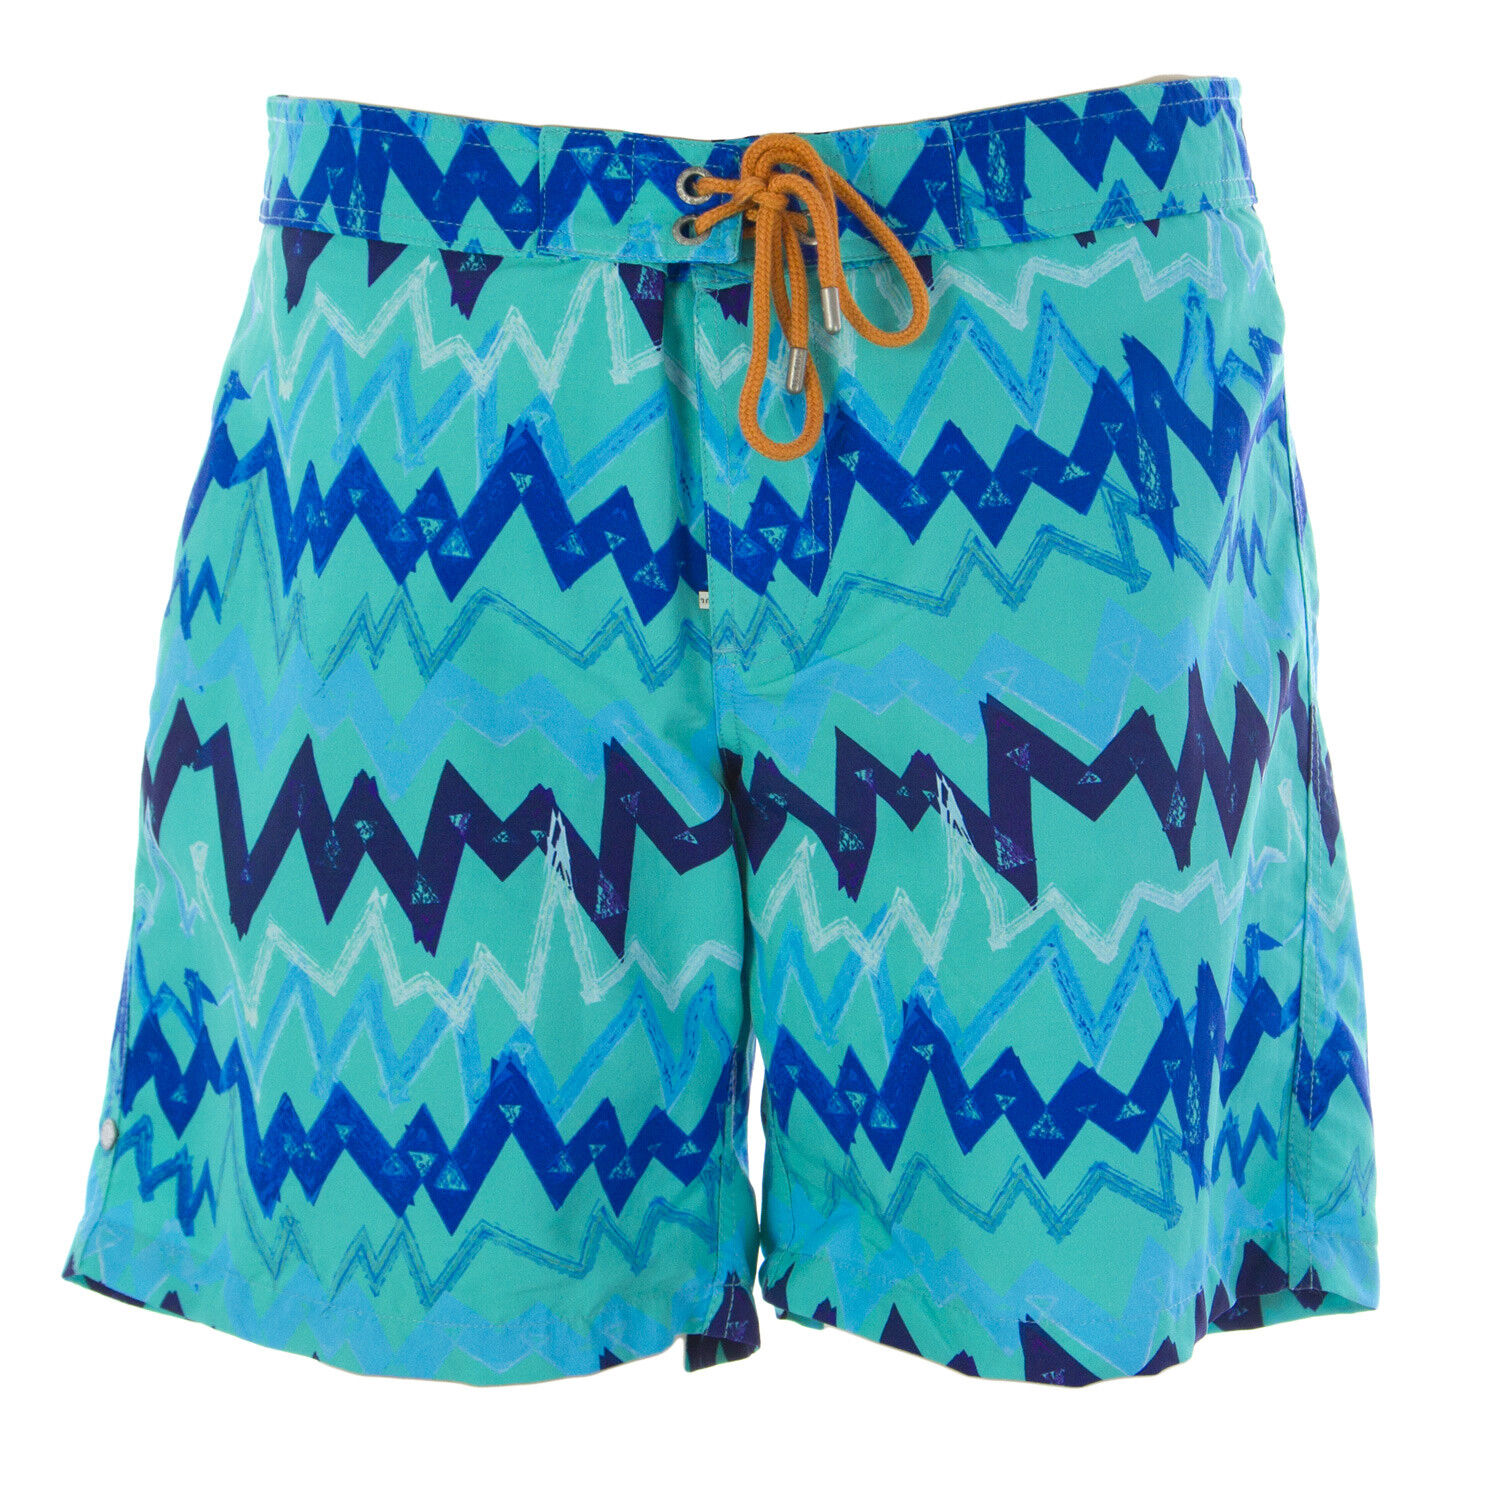 b4812fbb0d OLASUL Men's Turquoise 8 Chevron Trunks NEW Print Swim nanpno2209 ...